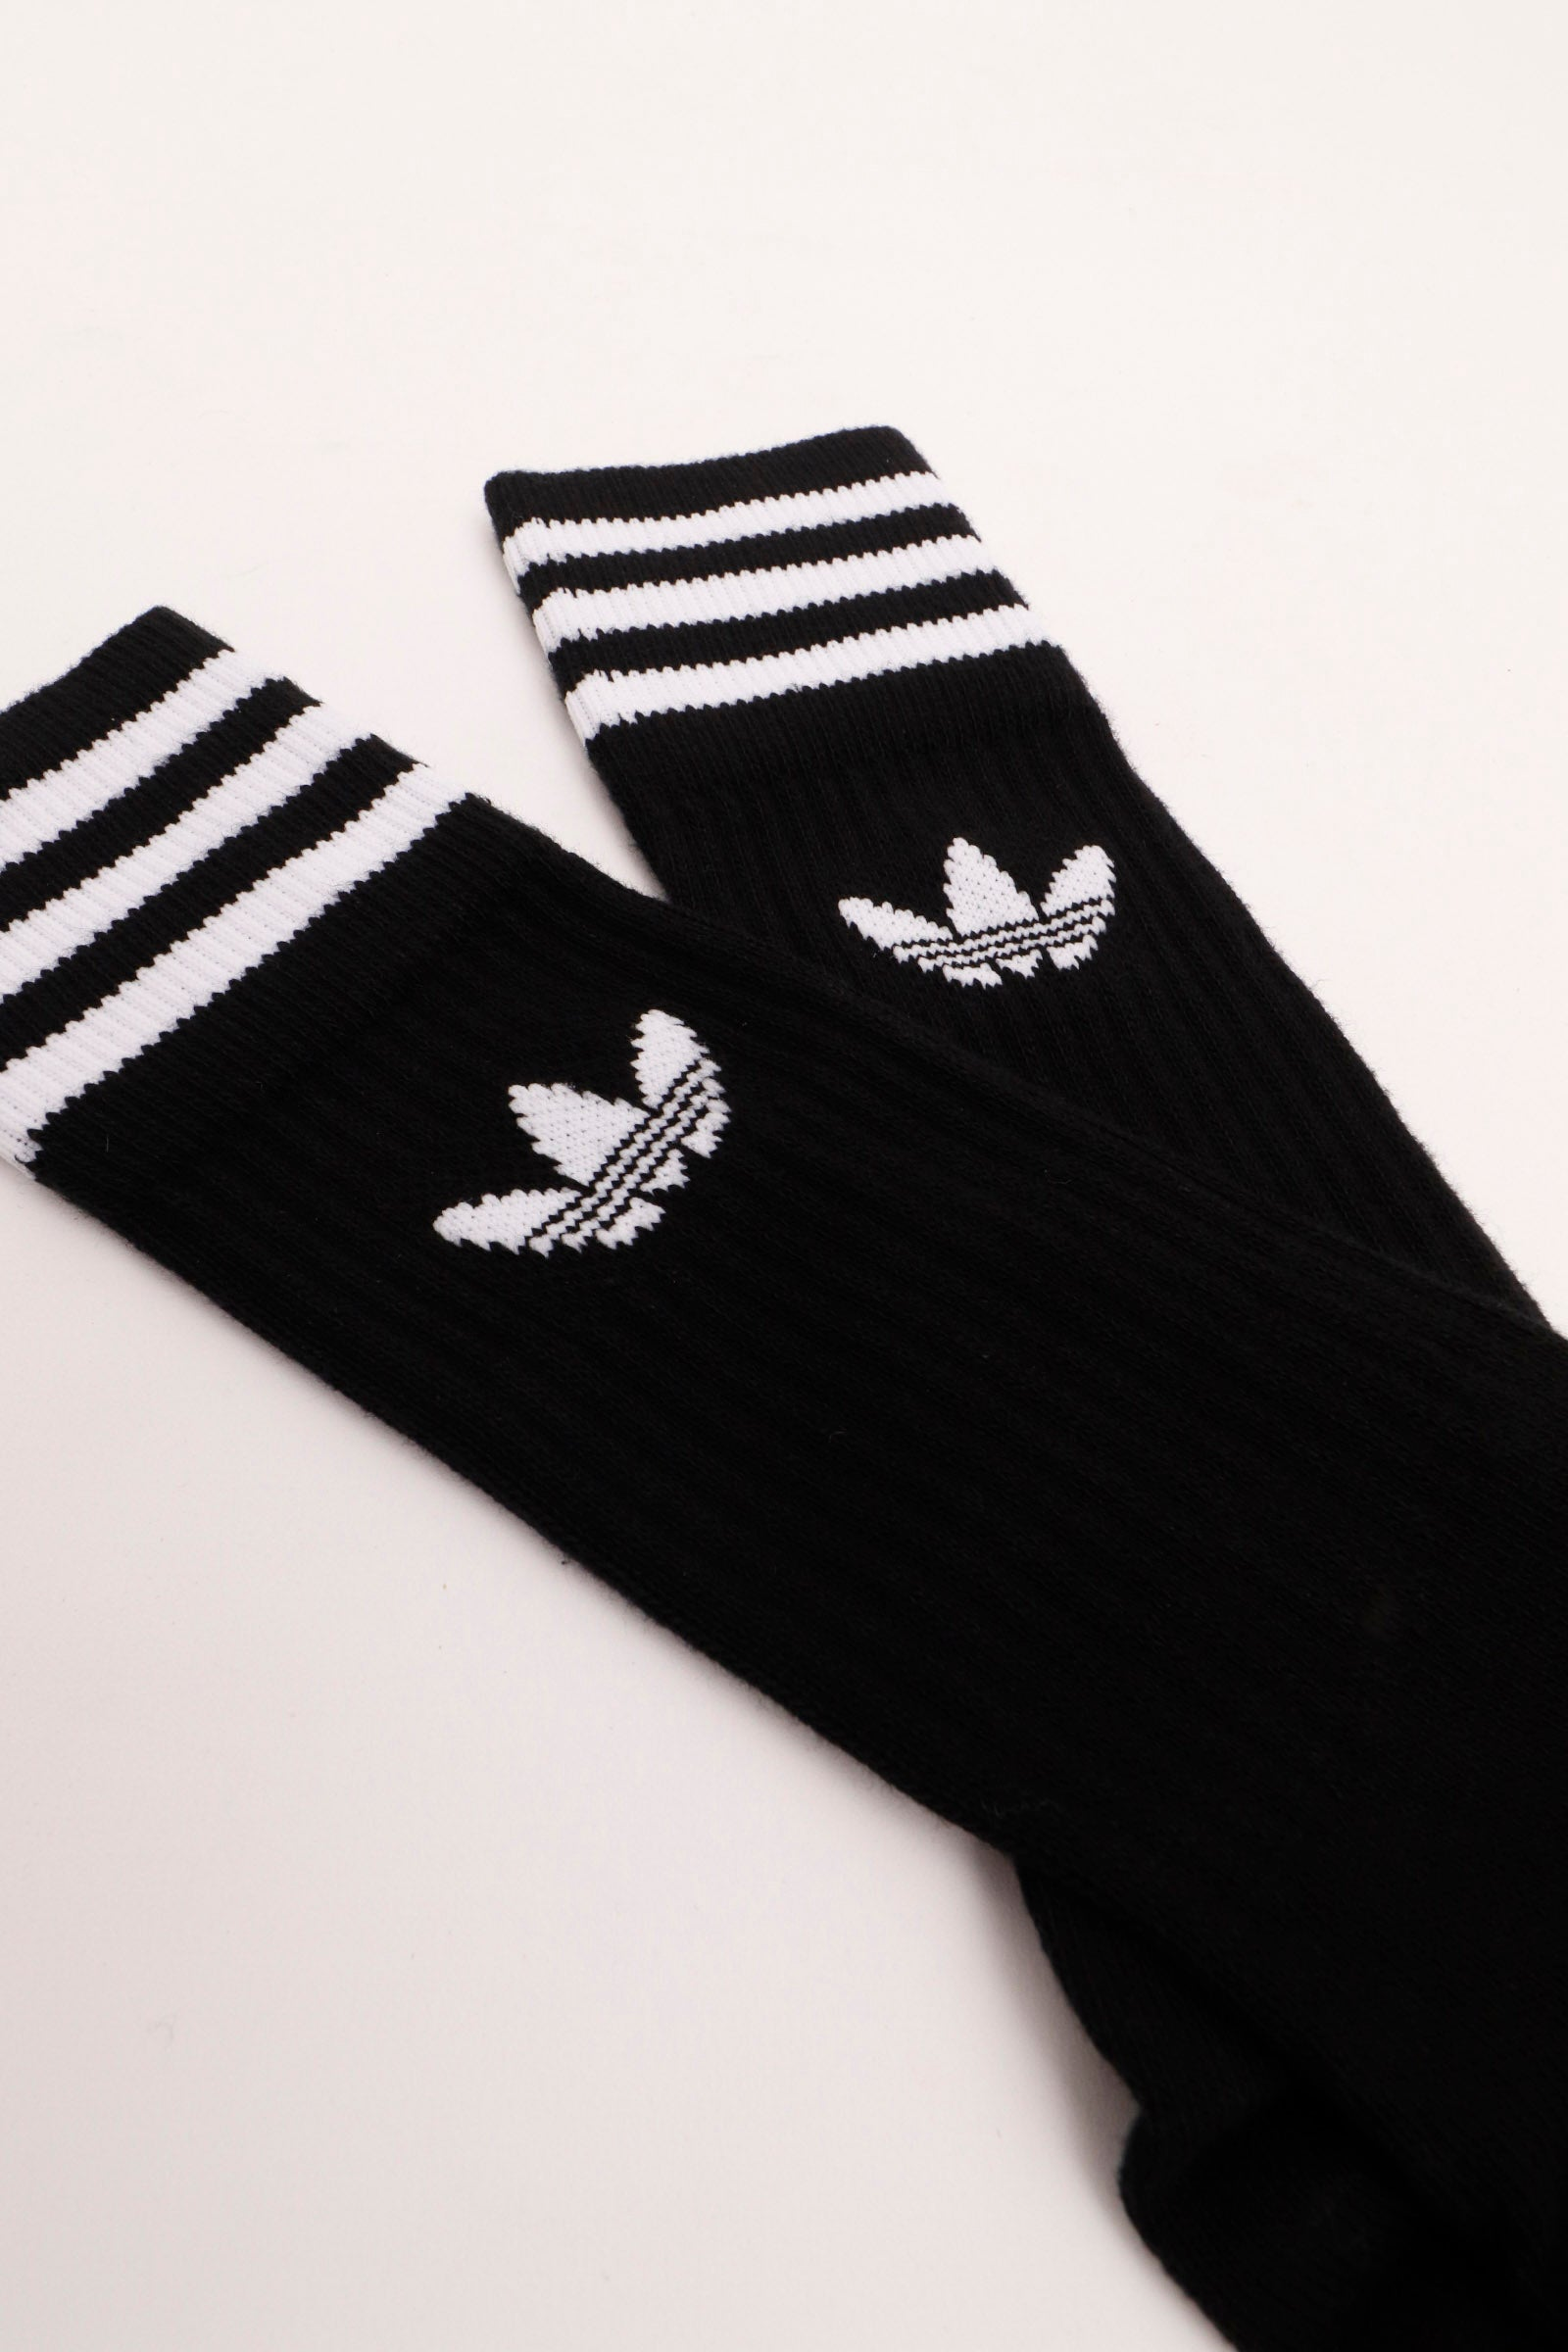 Adidas -  Solid Crew Pair Sock (Black/White)S21490